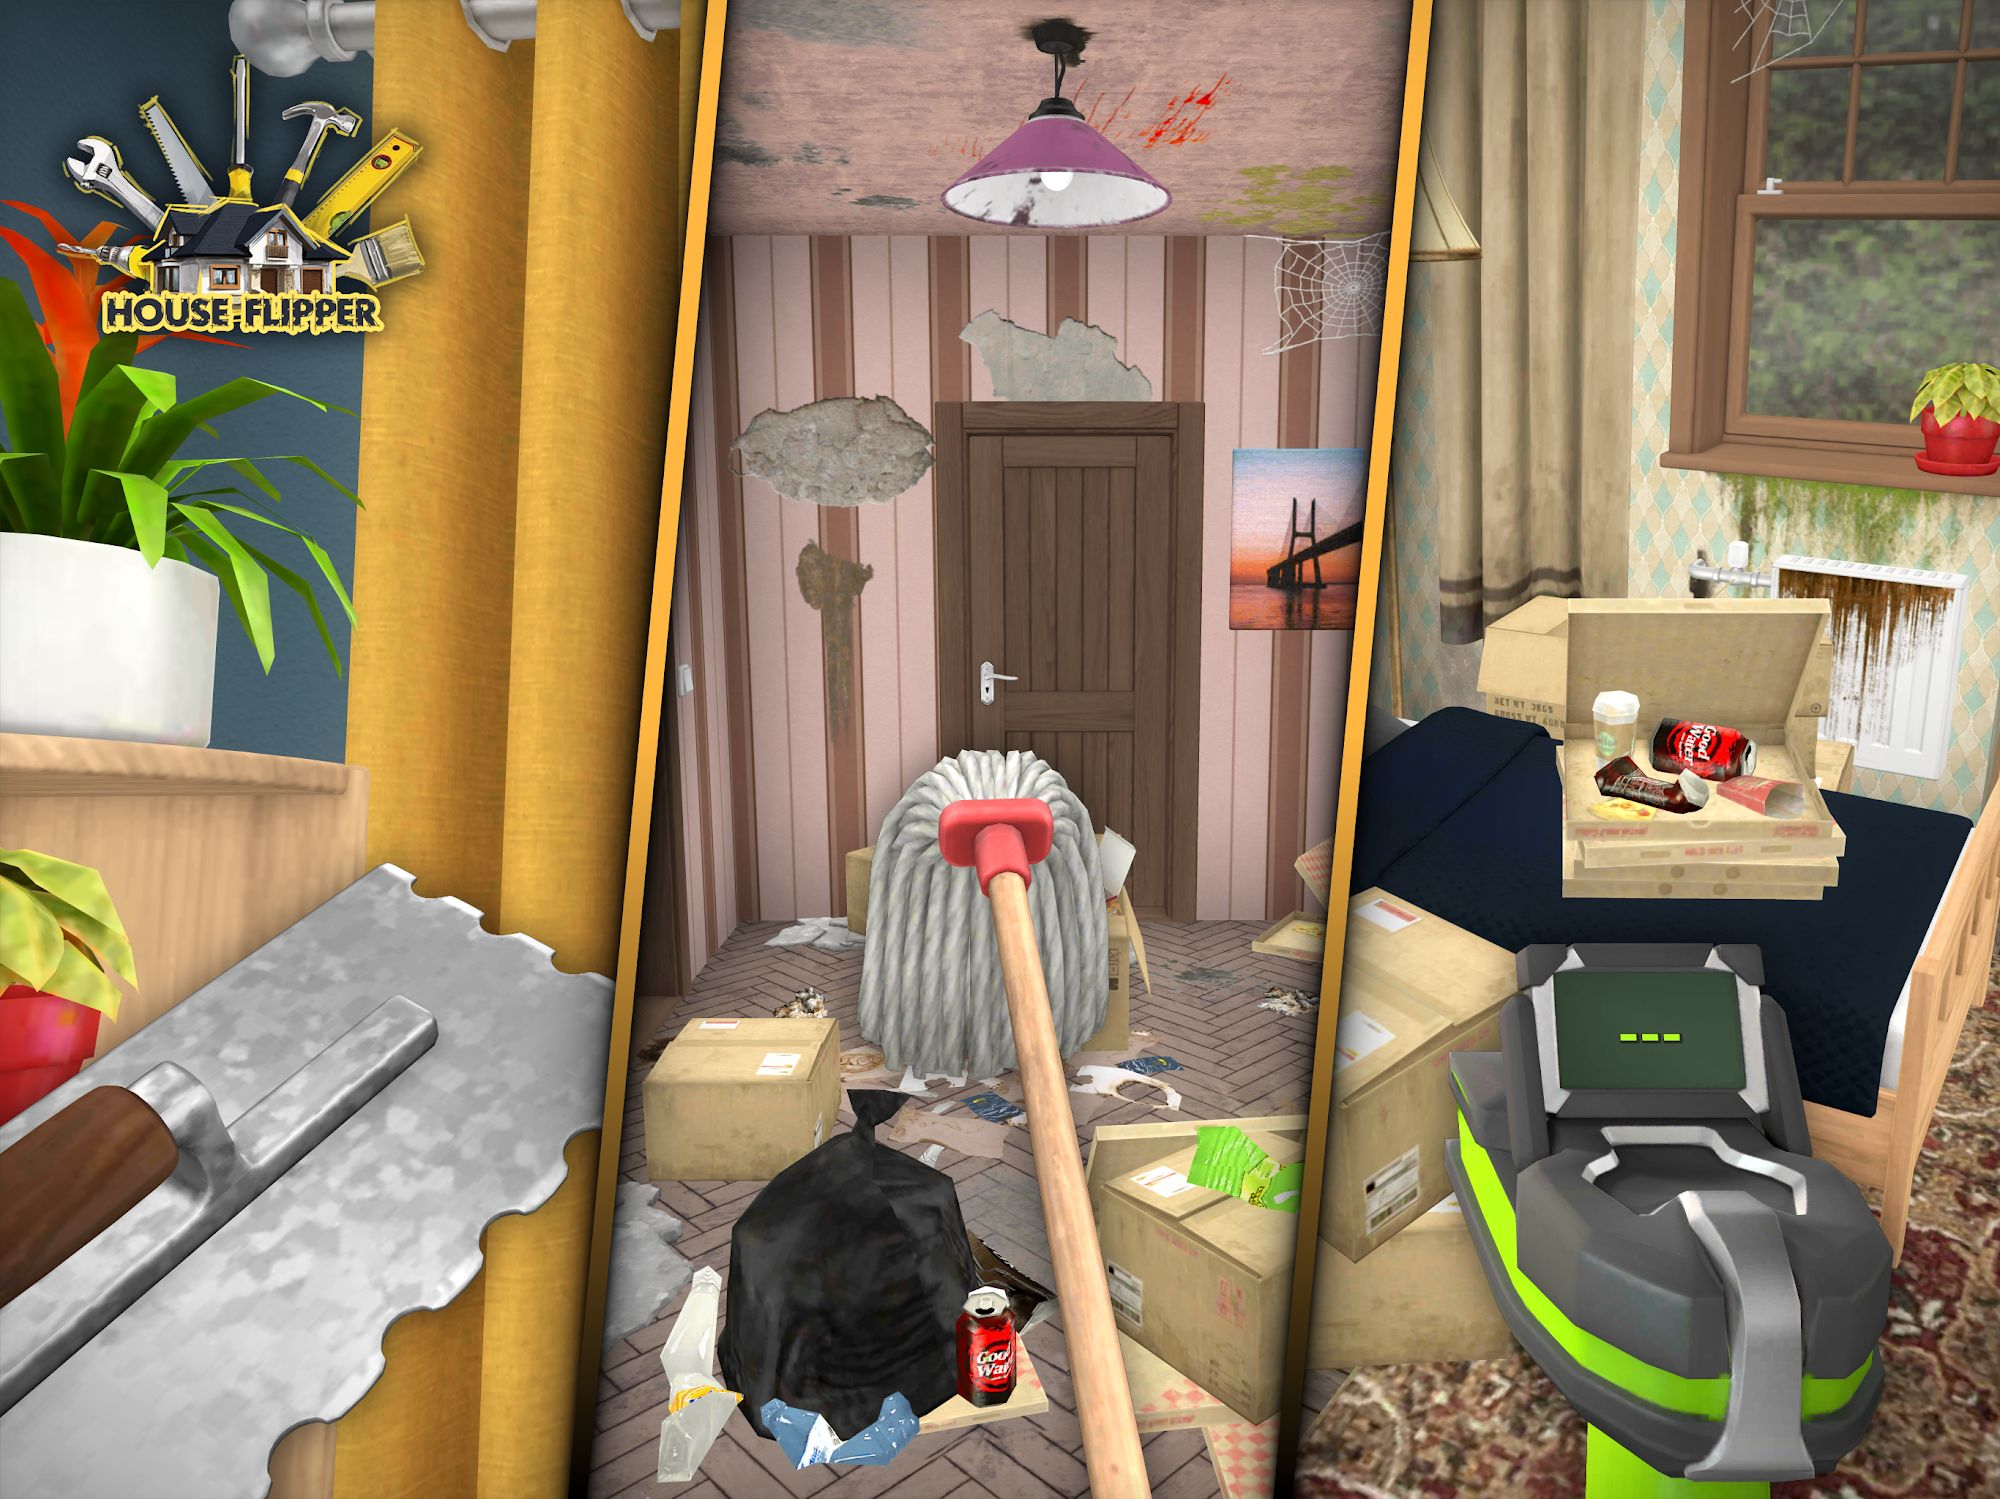 House Flipper: Home Design, Renovation Games для Android